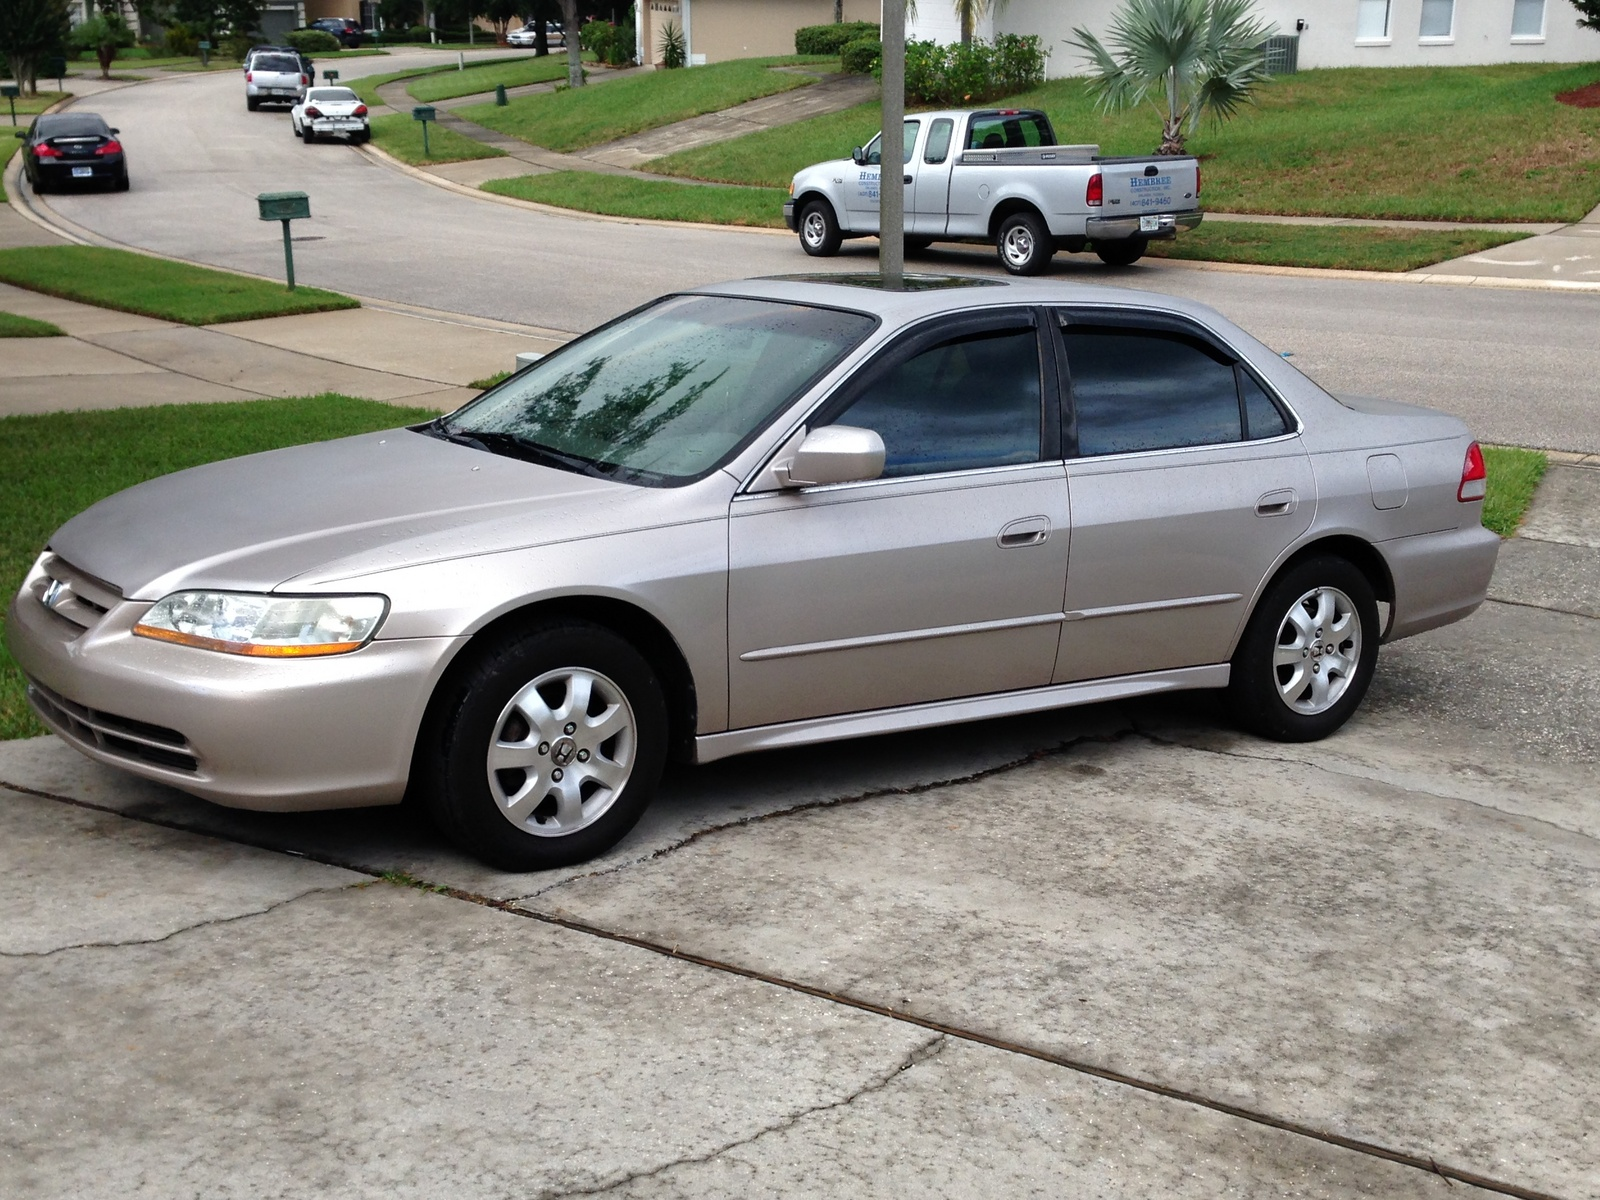 What's your take on the 2002 Honda Accord?